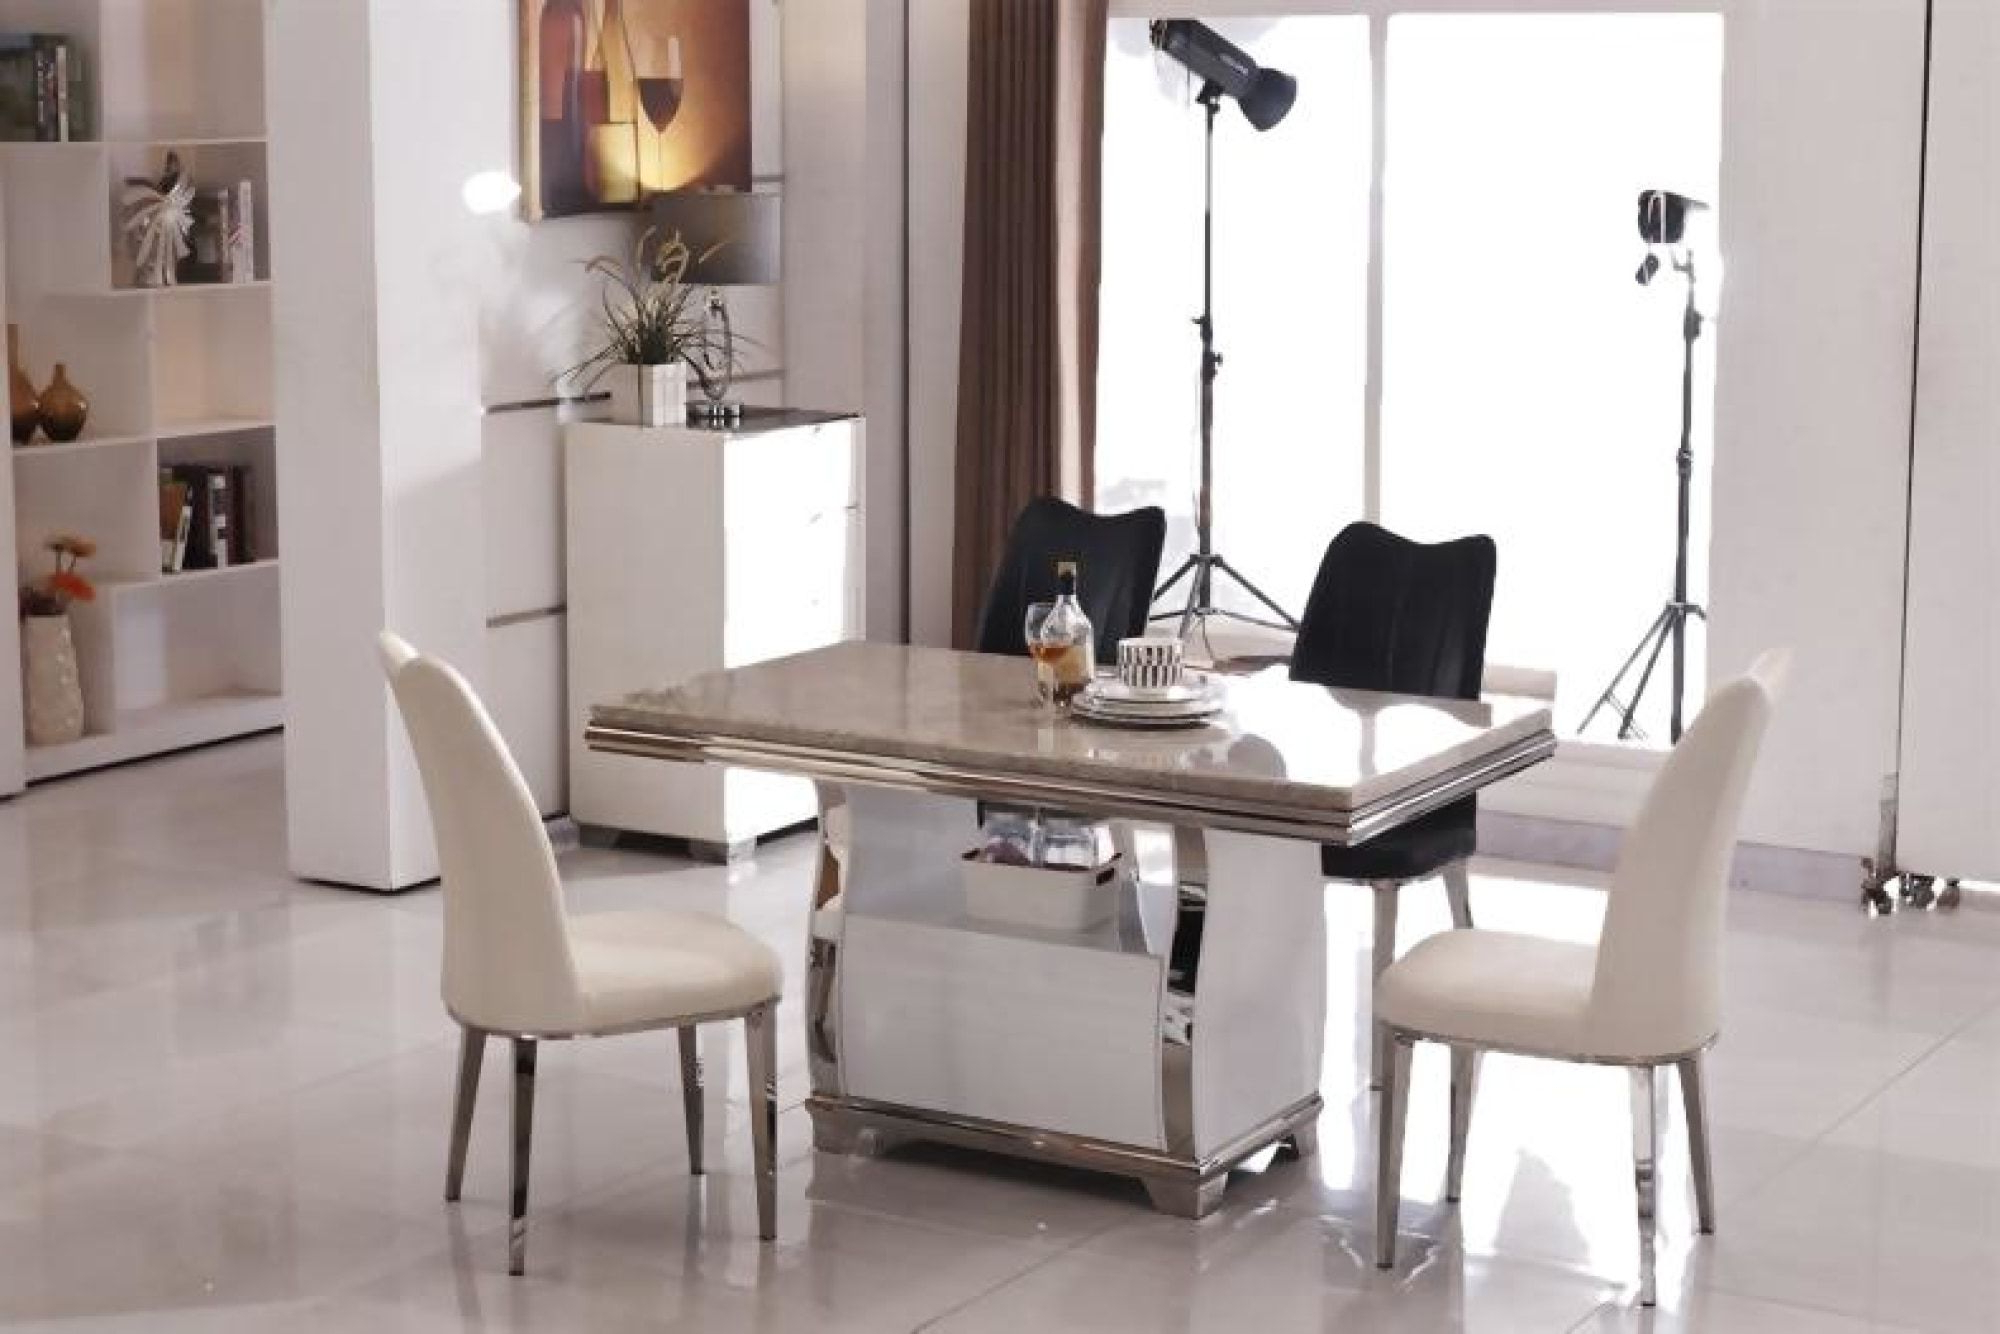 Widely Used Contemporary Dining Table Sets Stylish Luxury Silver Marble Intended For 6 Seater Retangular Wood Contemporary Dining Tables (View 22 of 30)